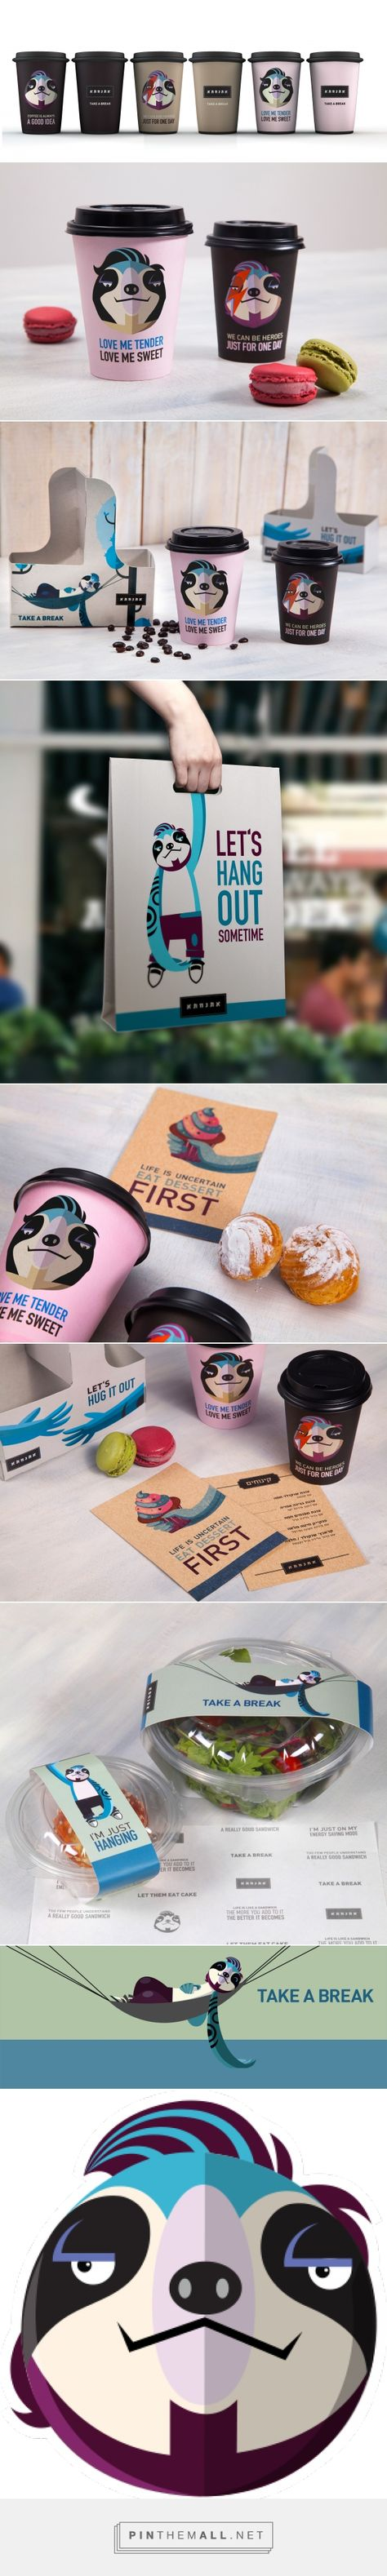 Packaging and branding for Break Coffee Shop by Plan b creative team curated by Packaging Diva PD. Easy is a common urban selfie sloth who performs as brand's main character peeping everywhere on take out boxes, posters, walls, windows, coffee cups and even under tables : )